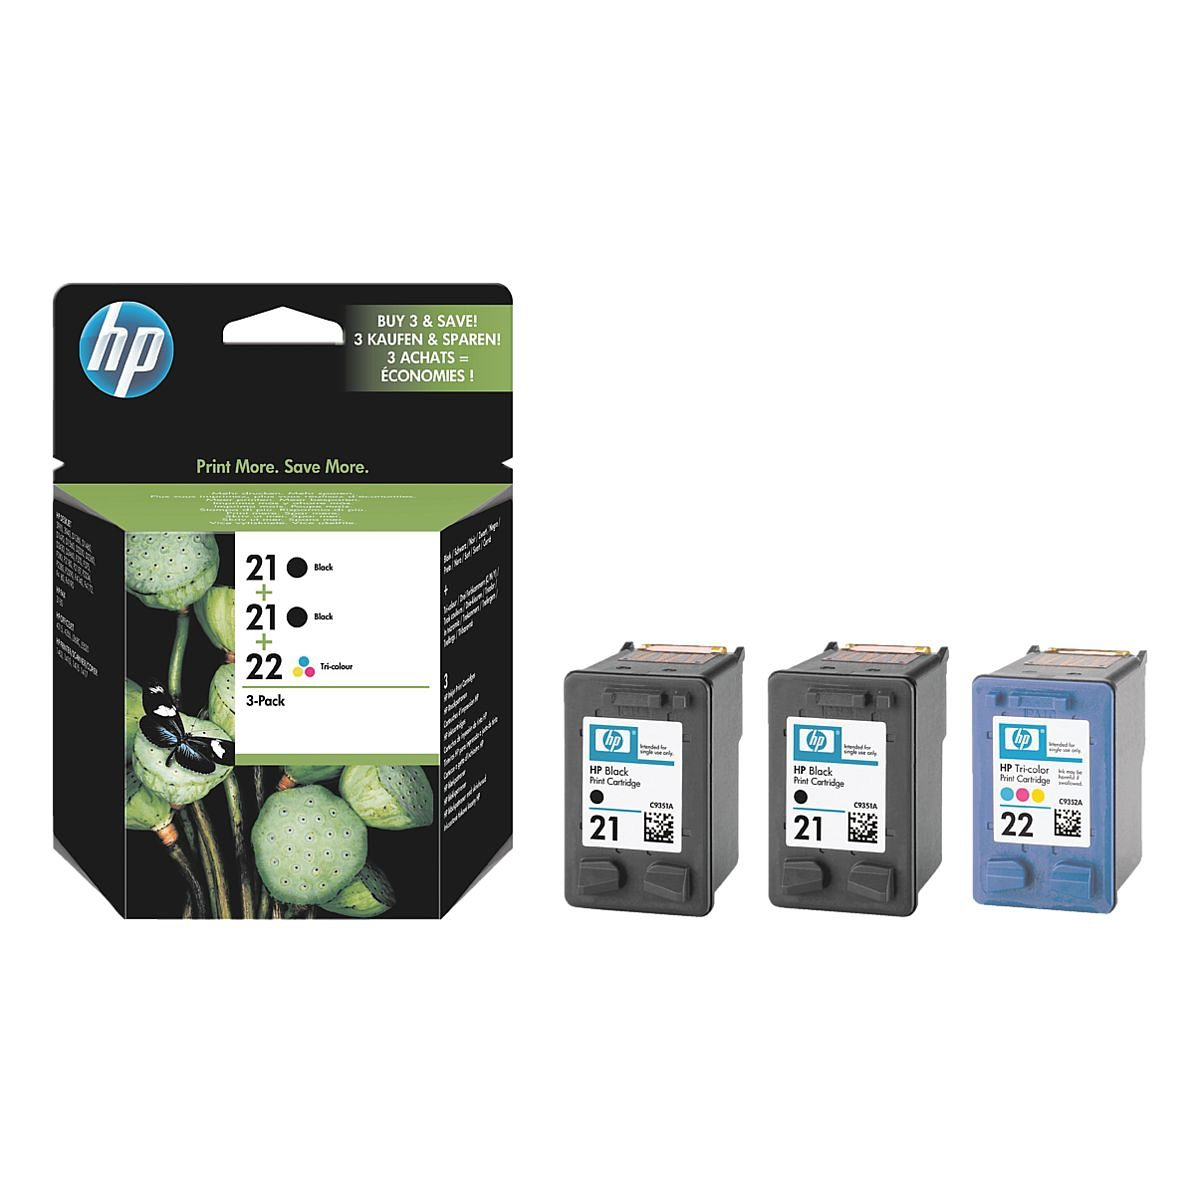 HP Tintenpatronen-Set »HP SD400AE« HP 21 & 22